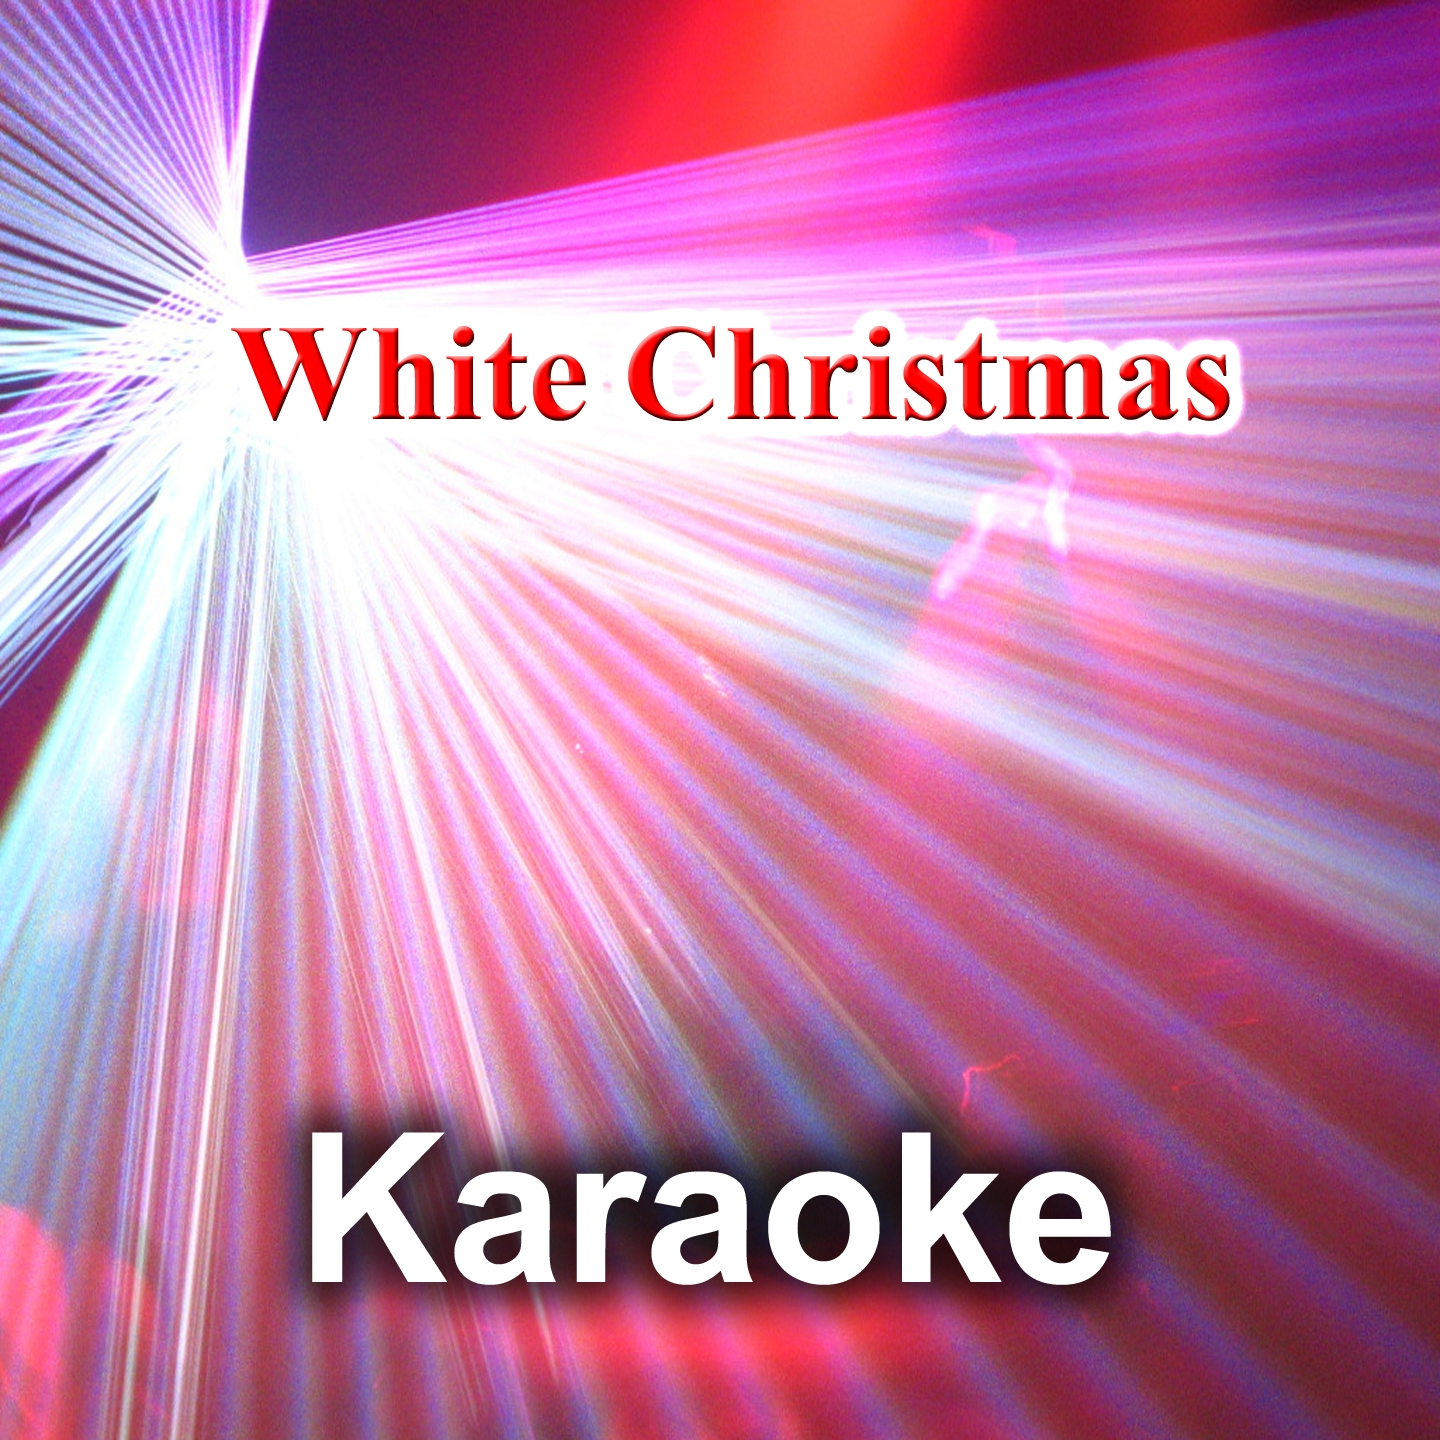 Ellie burn lyrics karaoke software